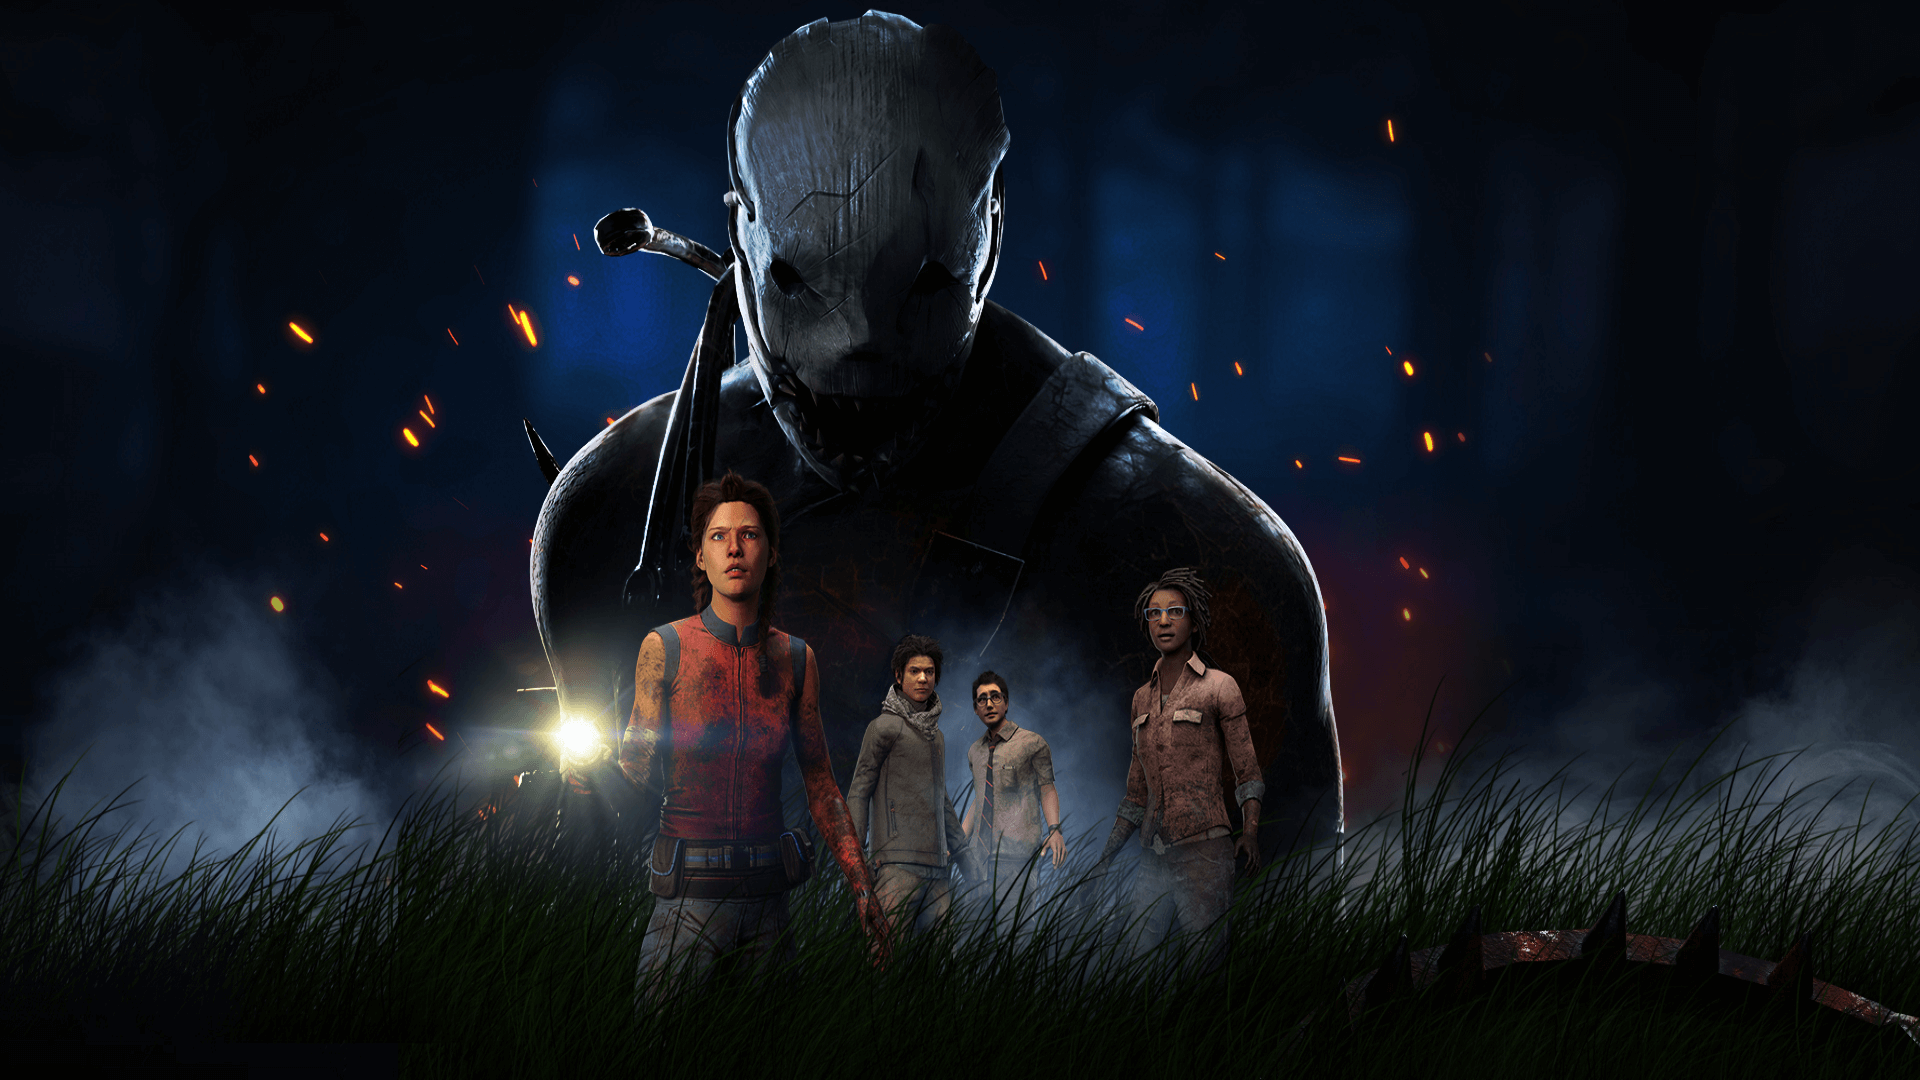 Dead by Daylight Comes to Stadia